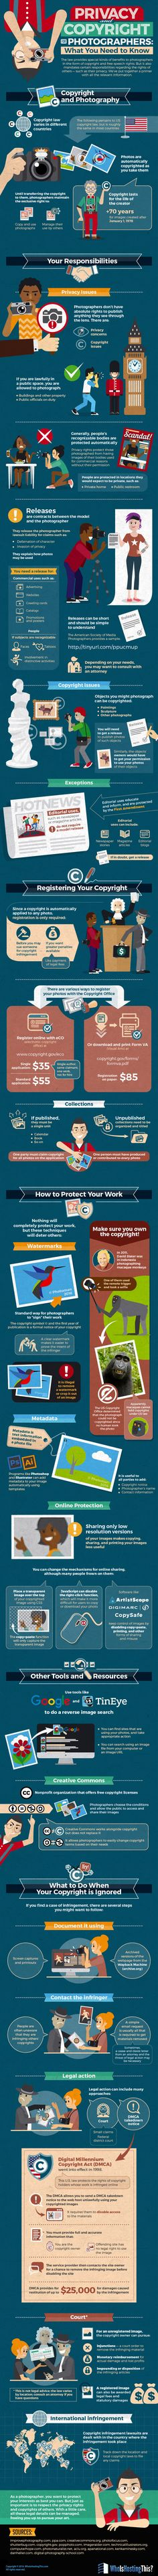 Privacy and Copyright for Photographers: What You Need to Know #Infographic #Photography